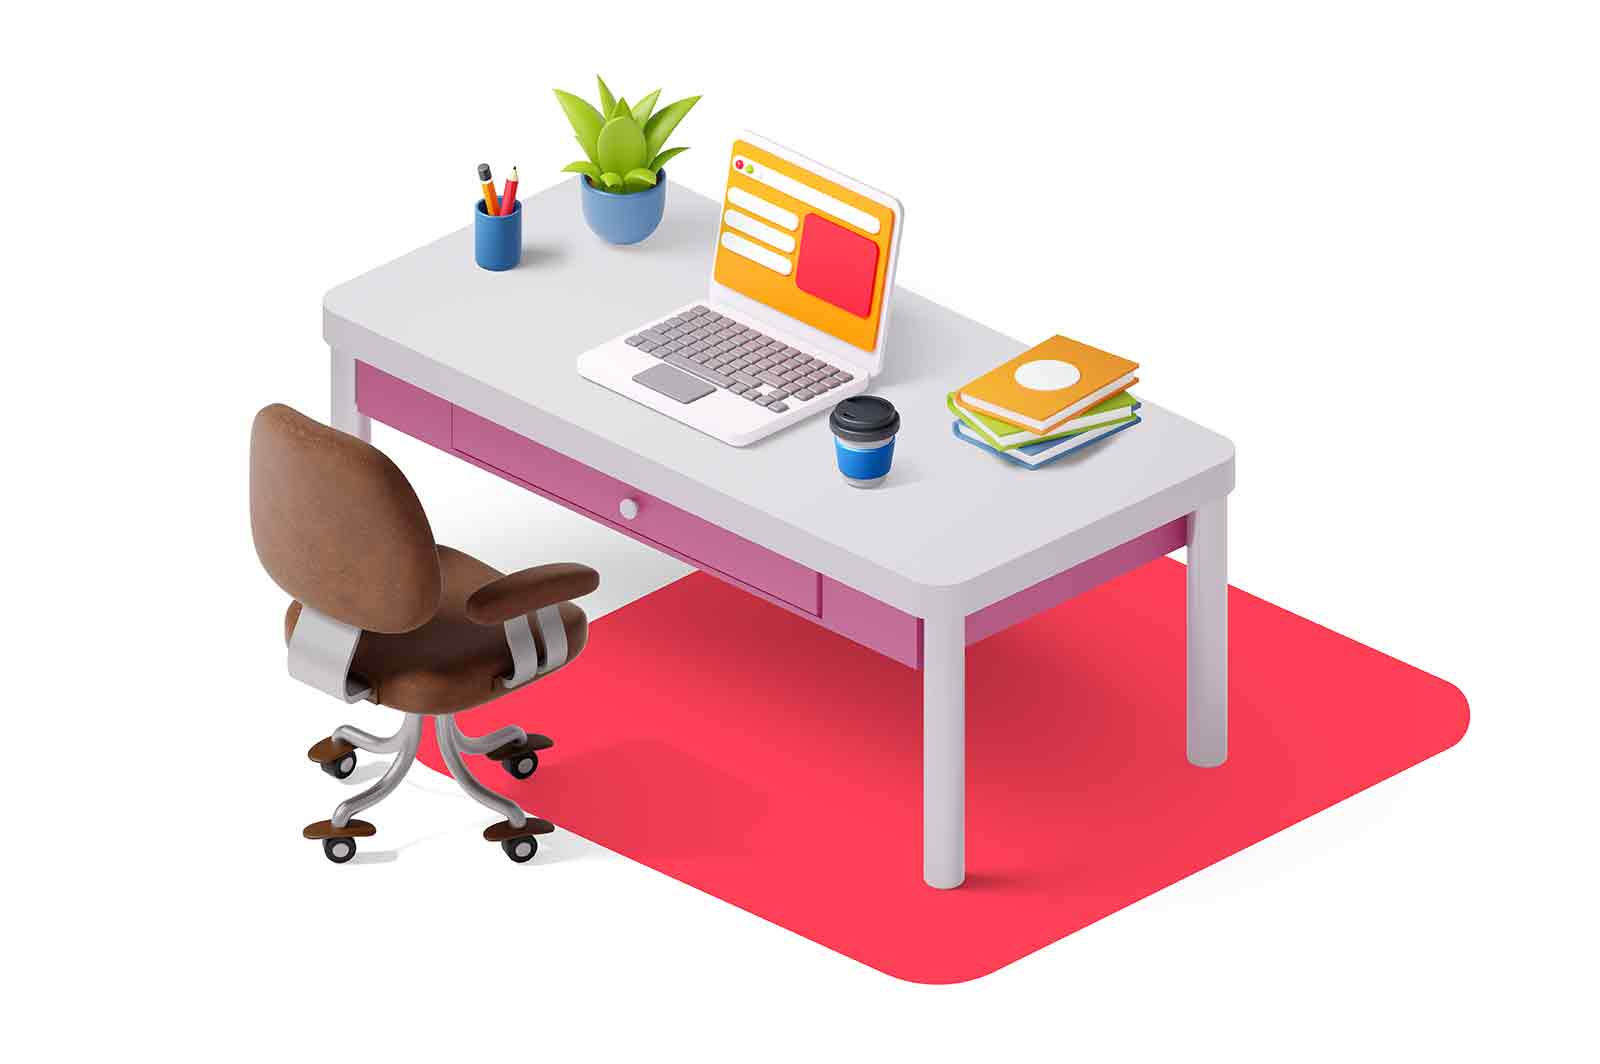 Workspace with table laptop and chair 3D rendered illustration. Office workplace, cosy interior design.